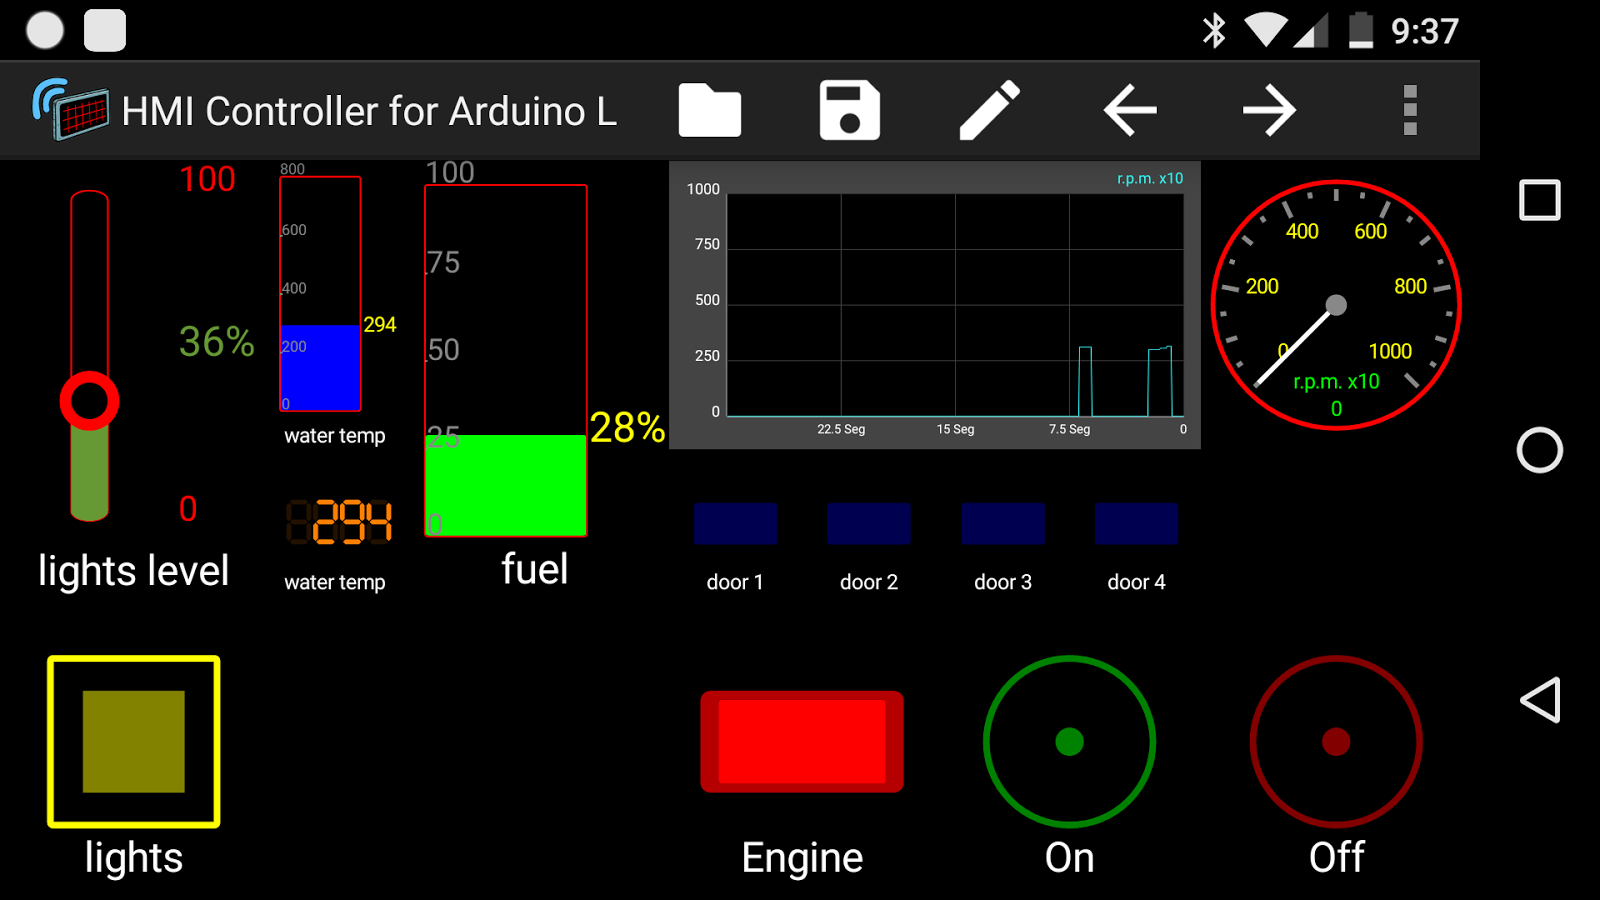 Hmi controller for arduino l android apps on google play